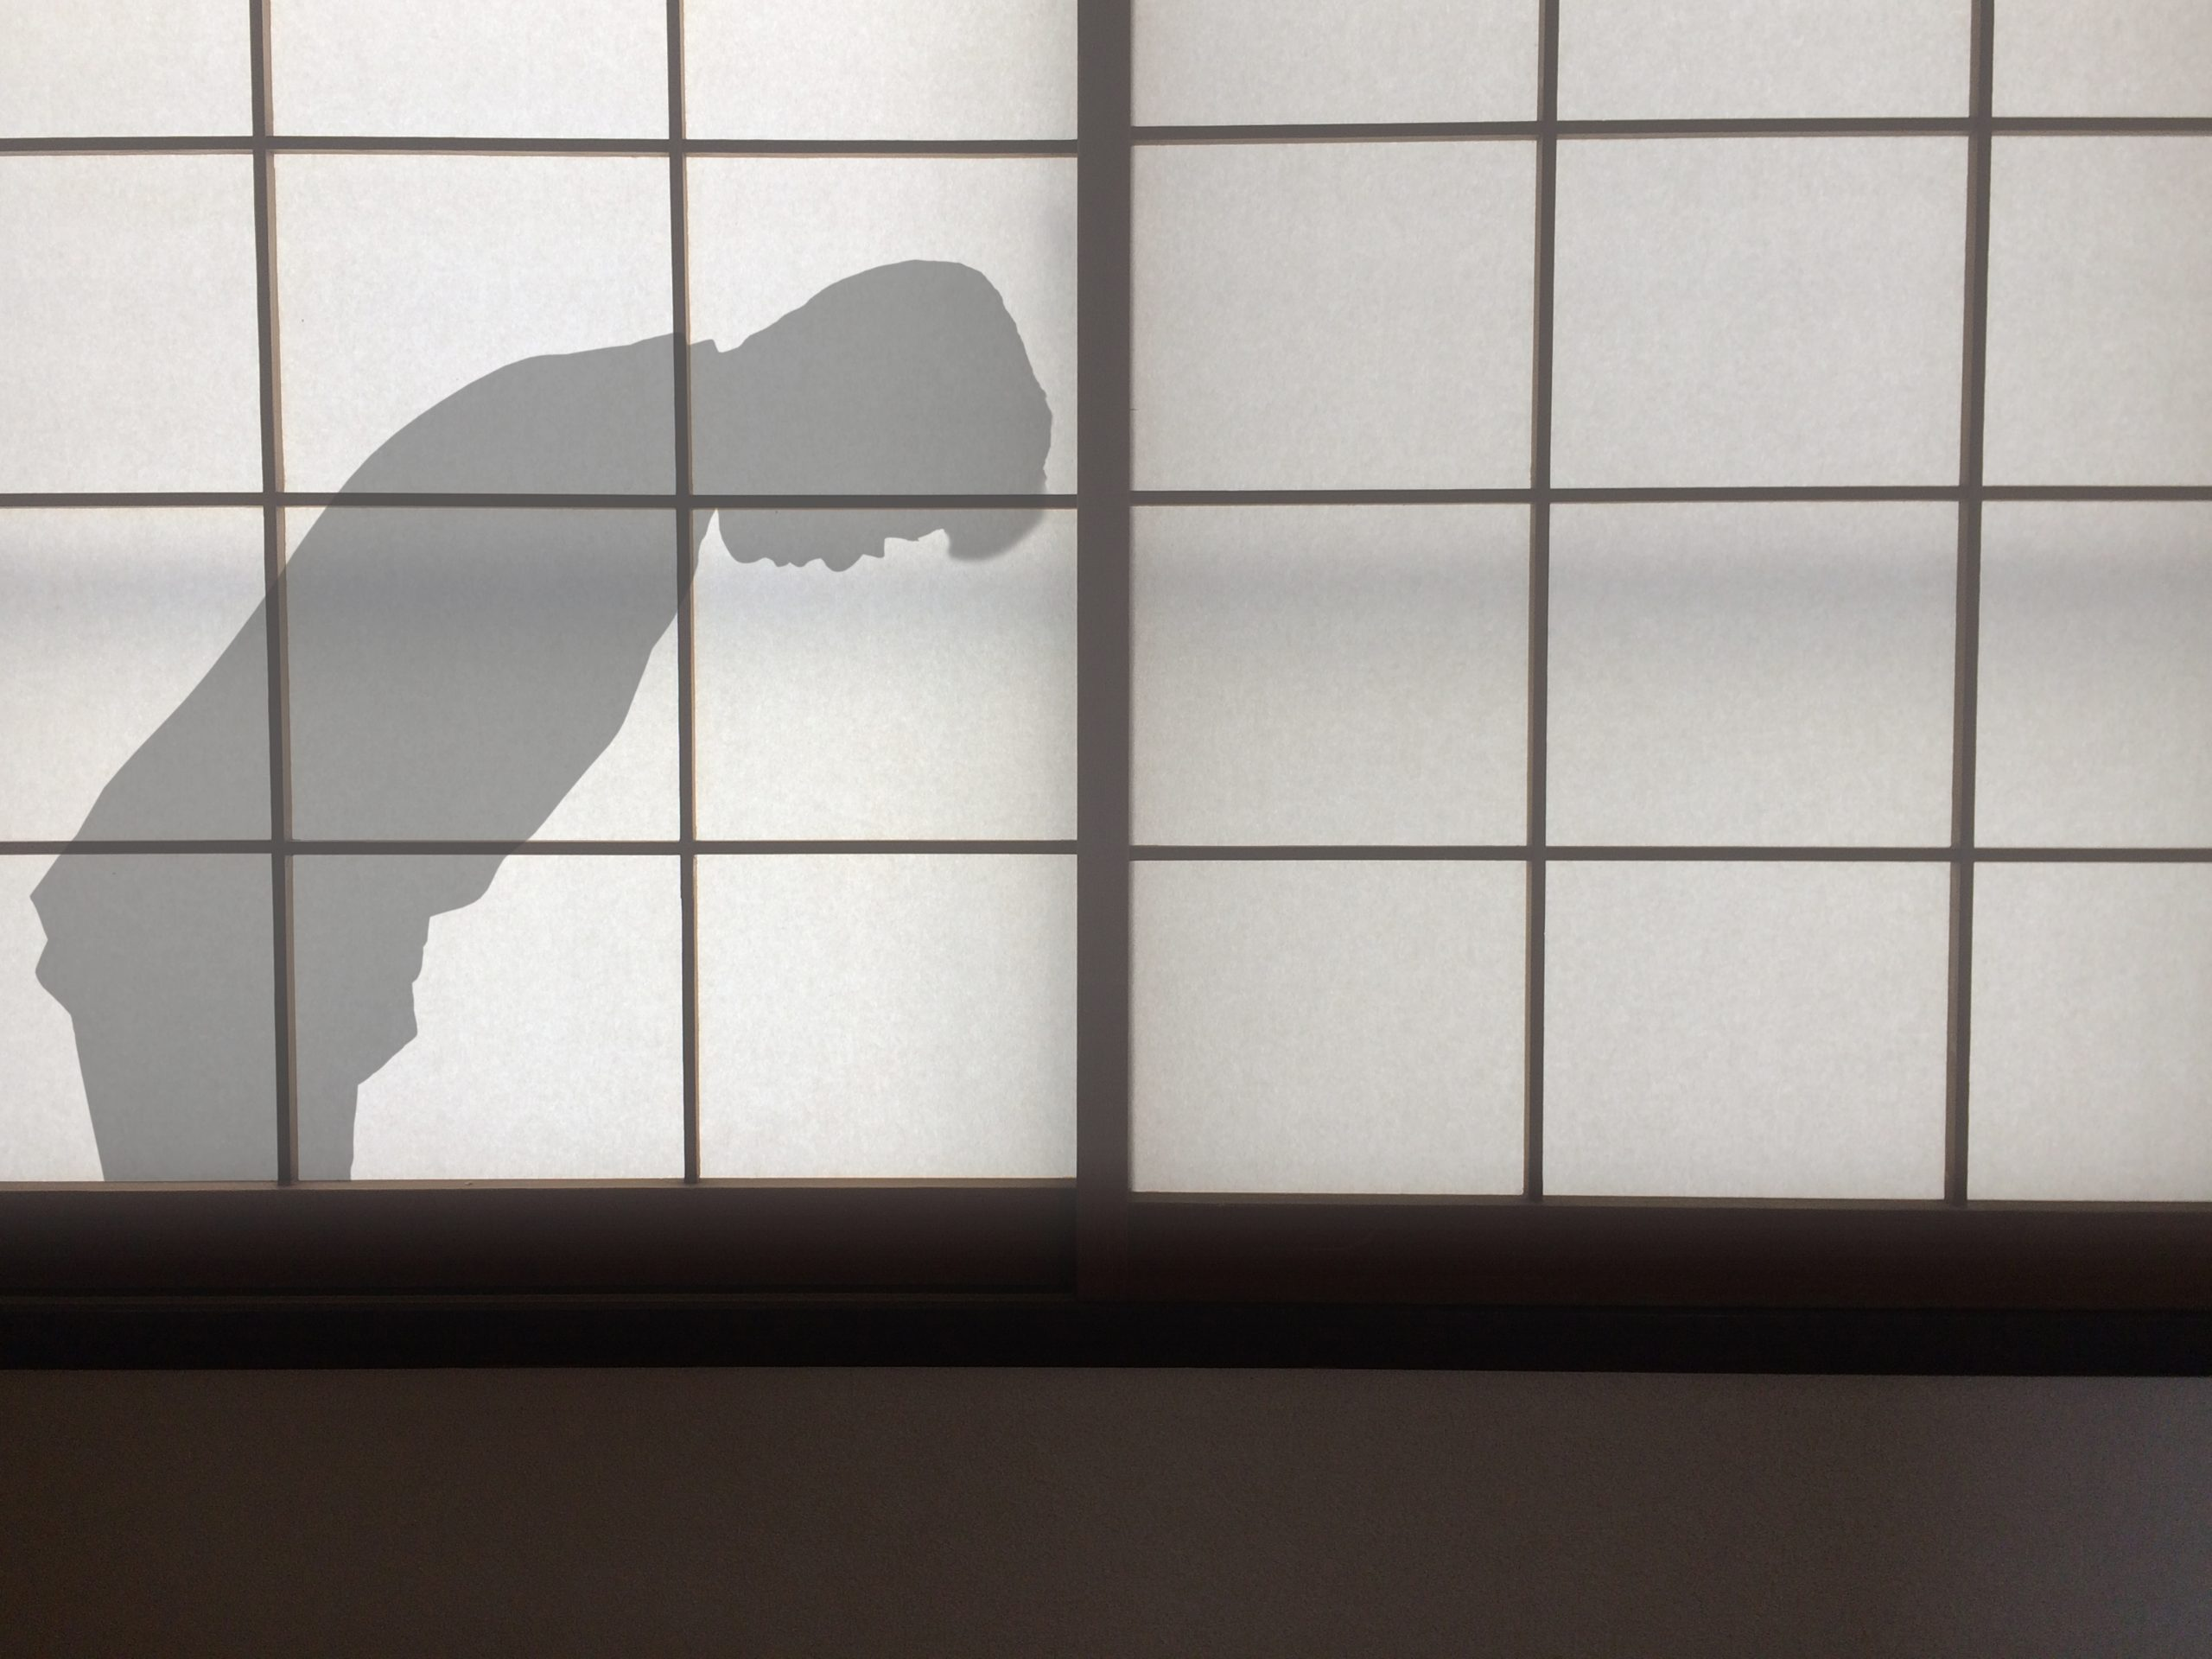 A shadow of a man bowing in a gesture of apology